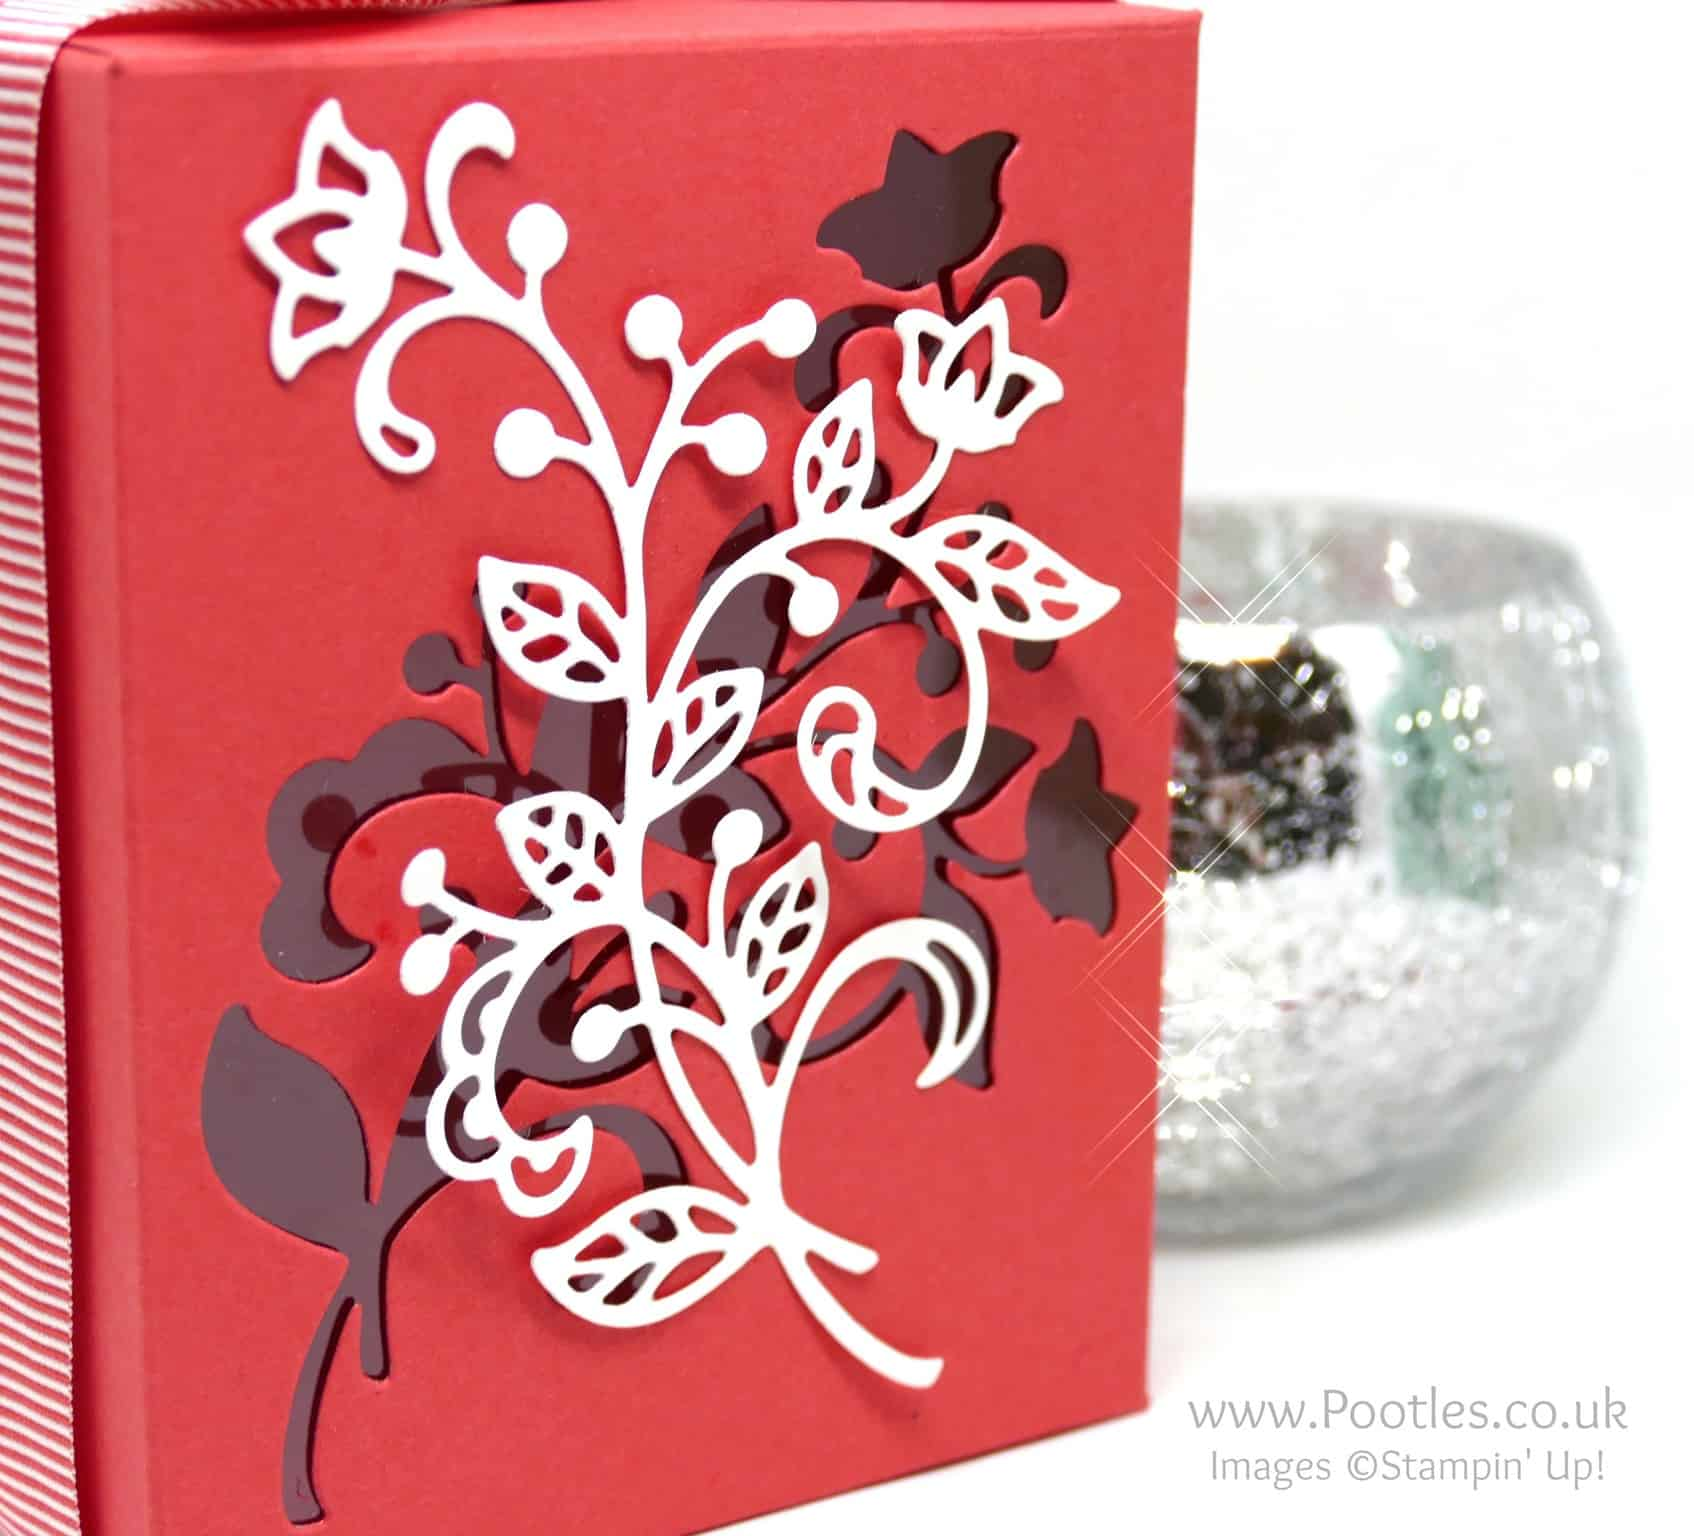 Stampin' Up's Flourish Thinlits used on a Window Box